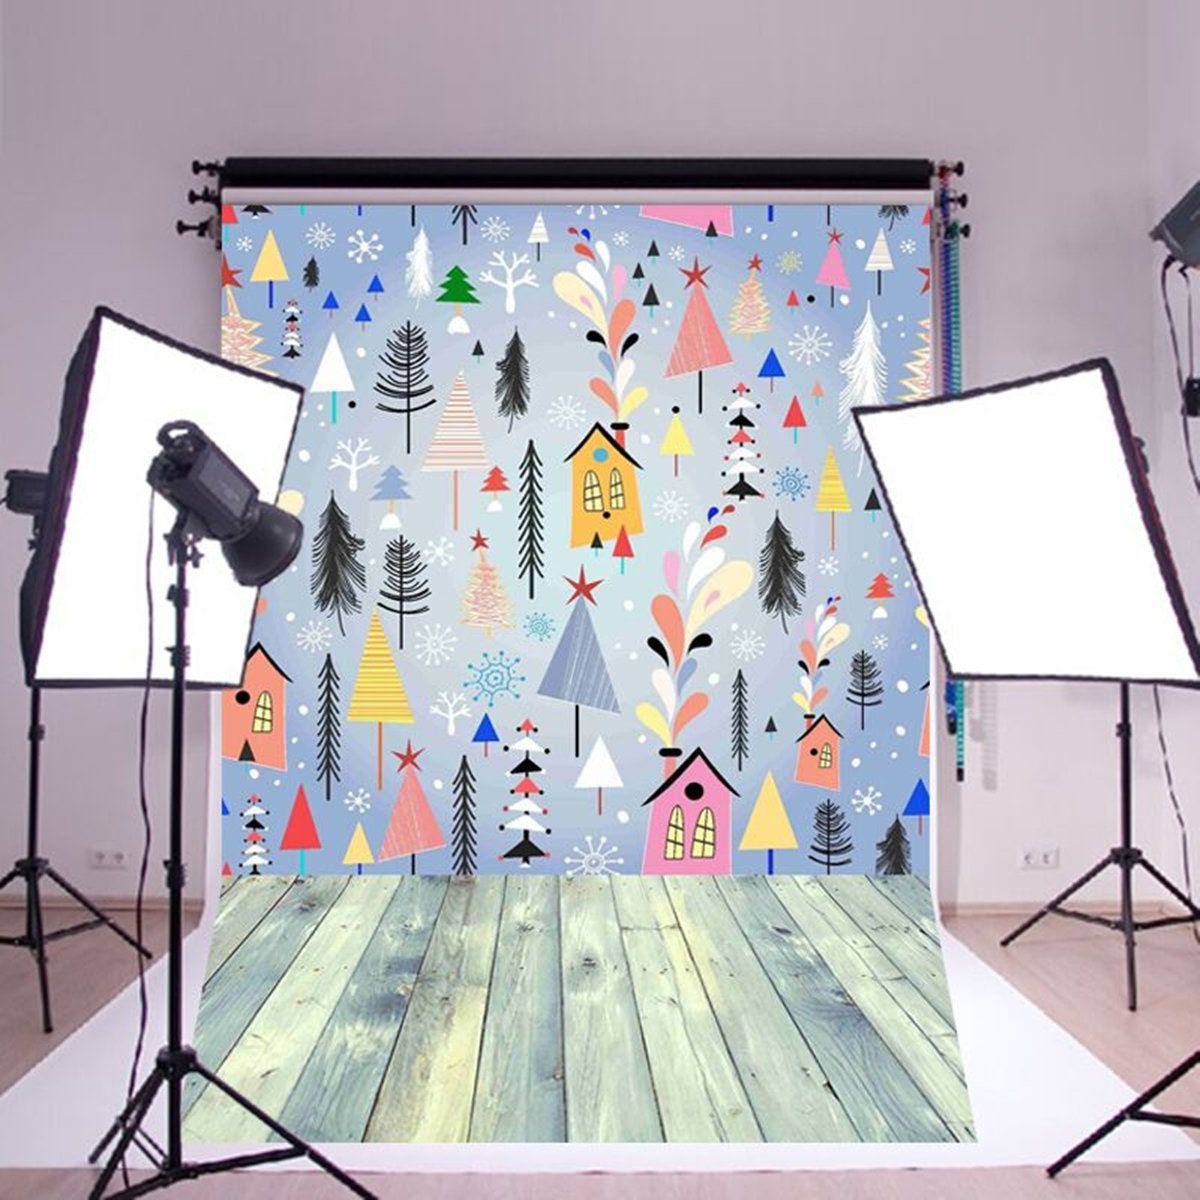 3x5ft flower wood wall vinyl background photography photo studio props - 5x7ft Colorful Wood Wall Vinyl Photography Backdrop Photo Background Studio Prop